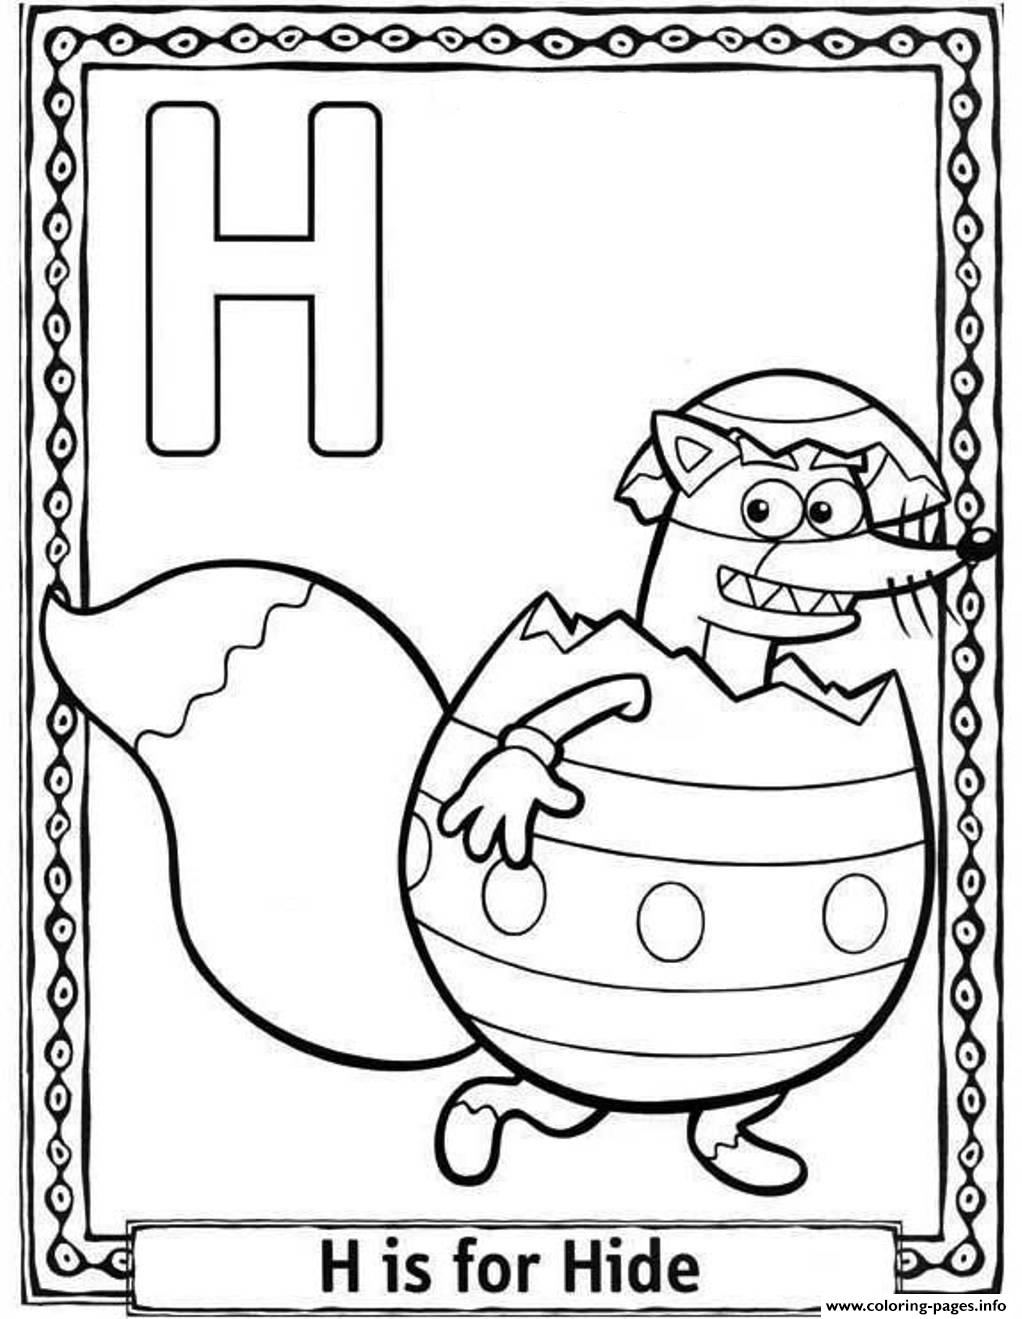 Dora Cartoon H Is For Hide Alphabet 9b64 Coloring Pages Printable